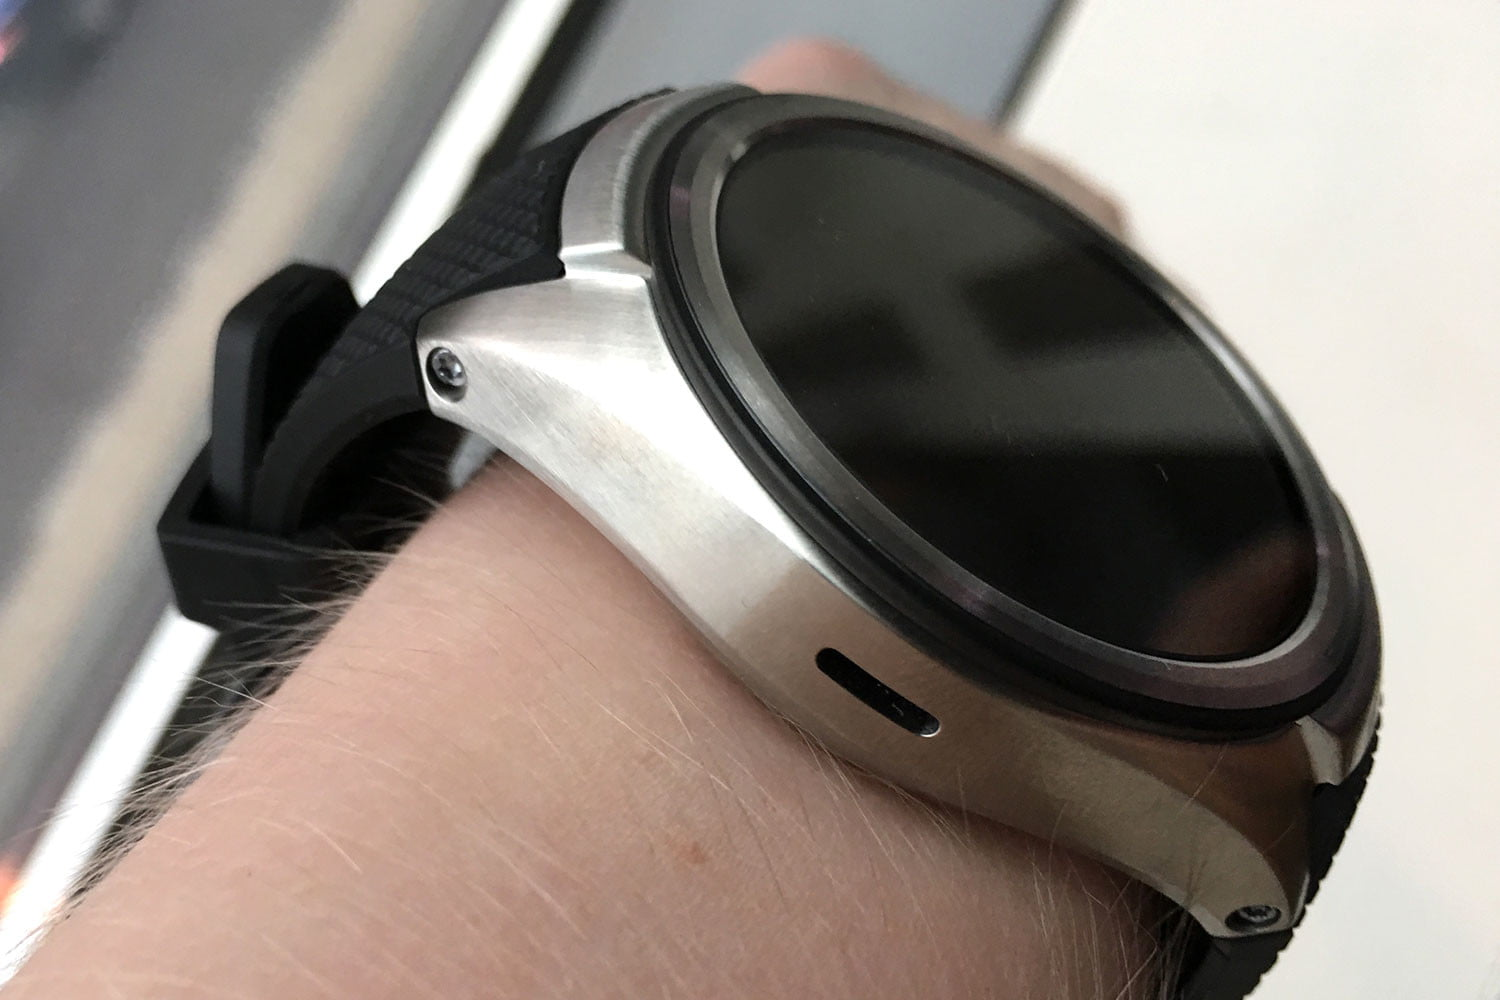 lg watch urbane 4g lte 2nd generation news  features pictures hands on